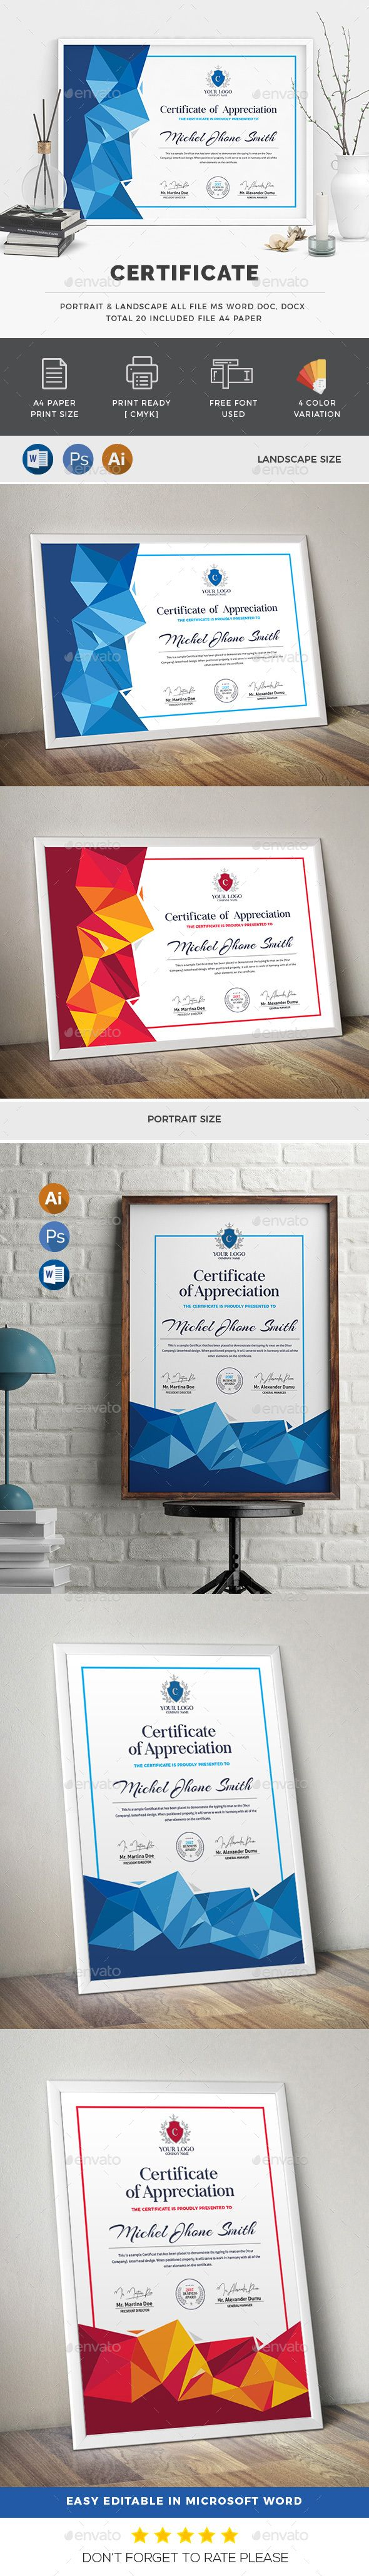 Certificate - Certificates Stationery Download here: https://graphicriver.net/item/certificate/19974161?ref=classicdesignp